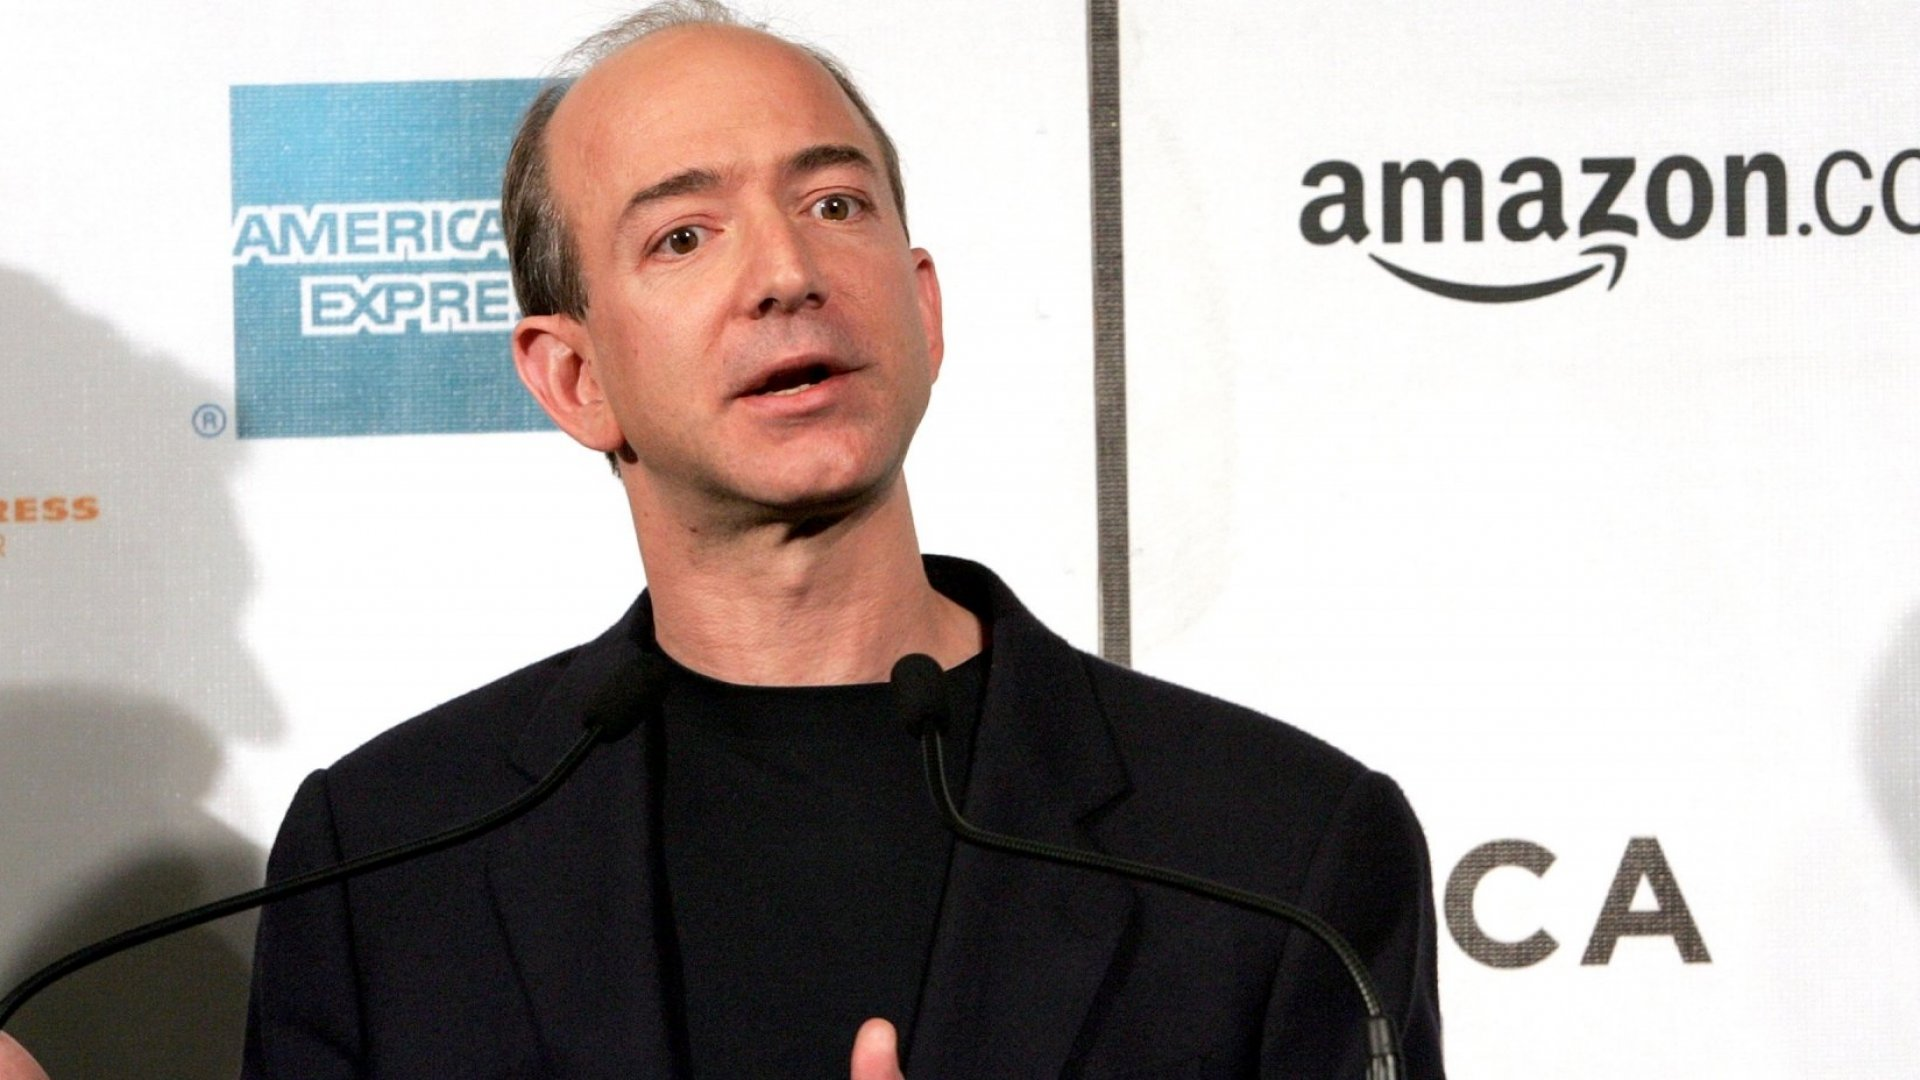 Jeff Bezos Is the Richest Person Alive! No, Wait, He's Not. Well, He Will Be, Anyway.